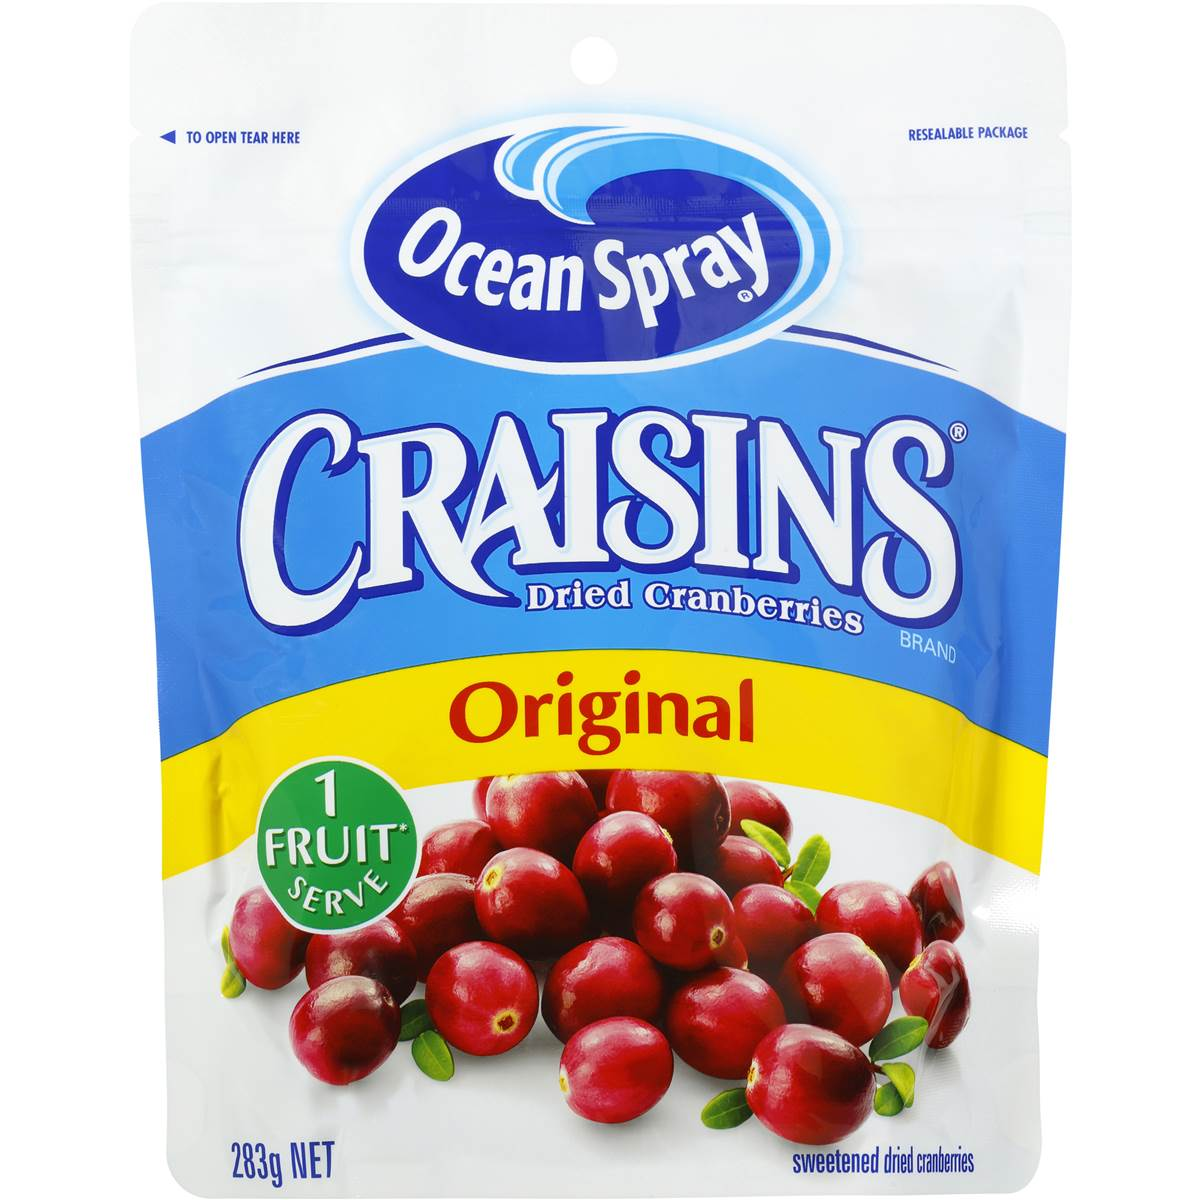 Nam Việt Quất Ocean Spray Craisins Dried Cranberries Original 280g